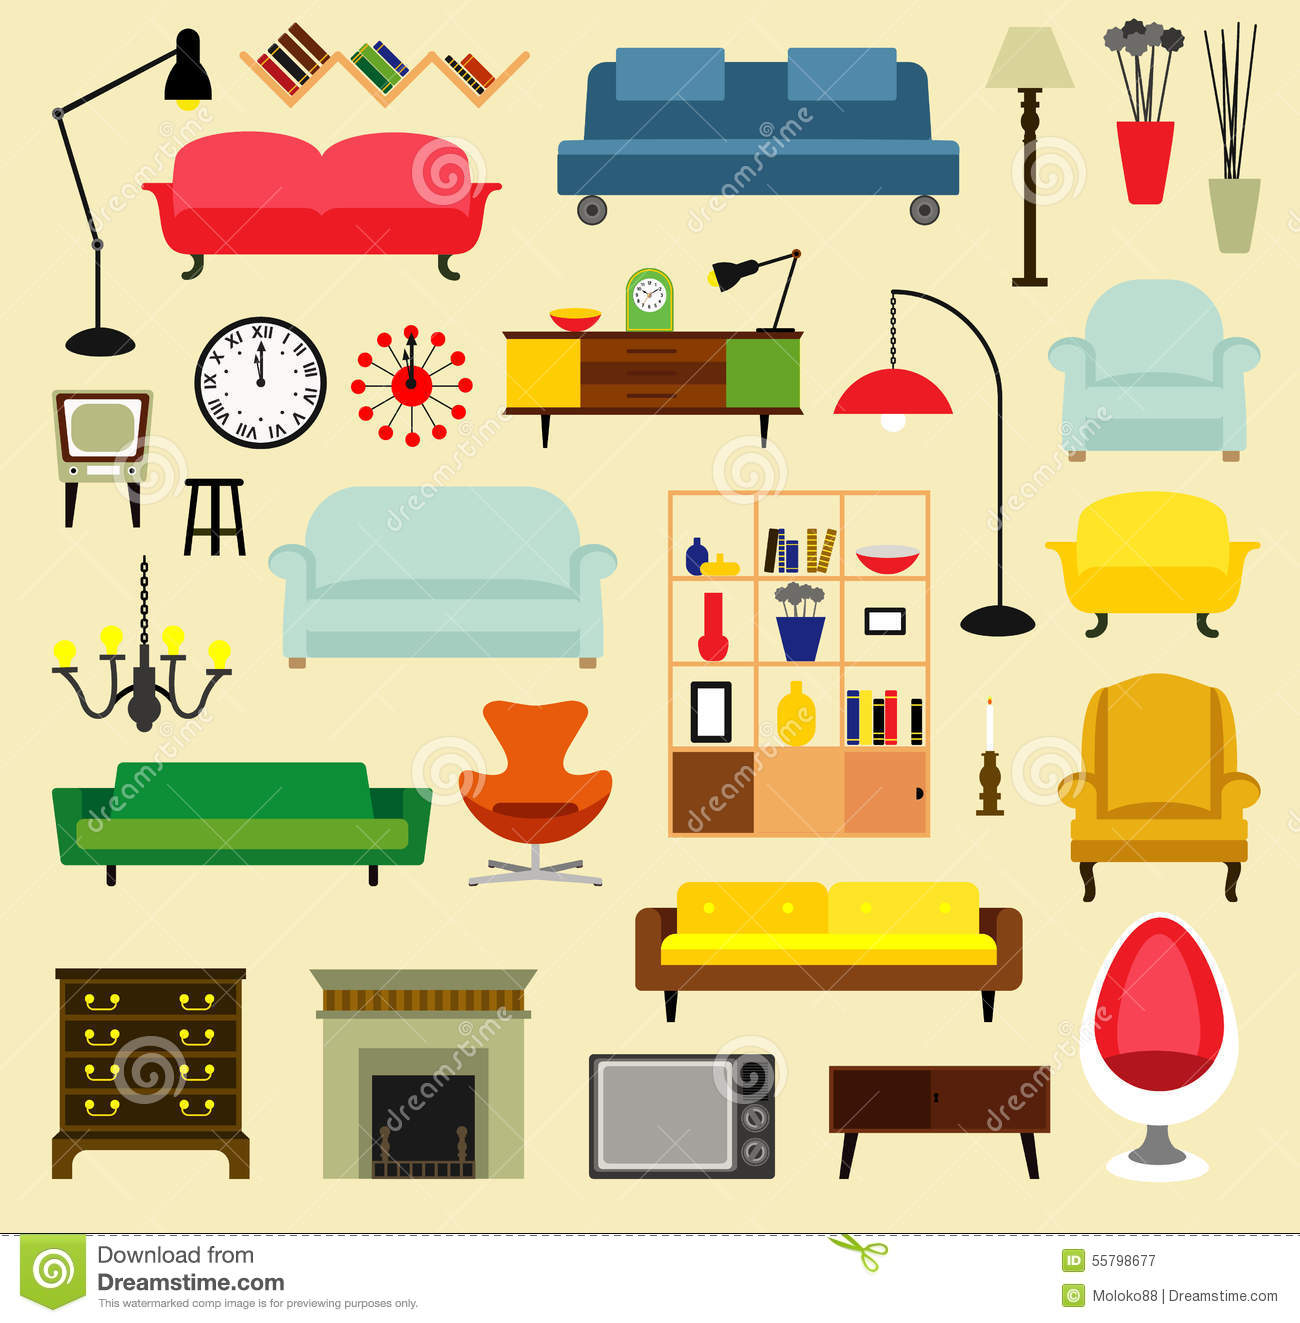 Cartoon furniture for living rooms . Flat style vector illustration.